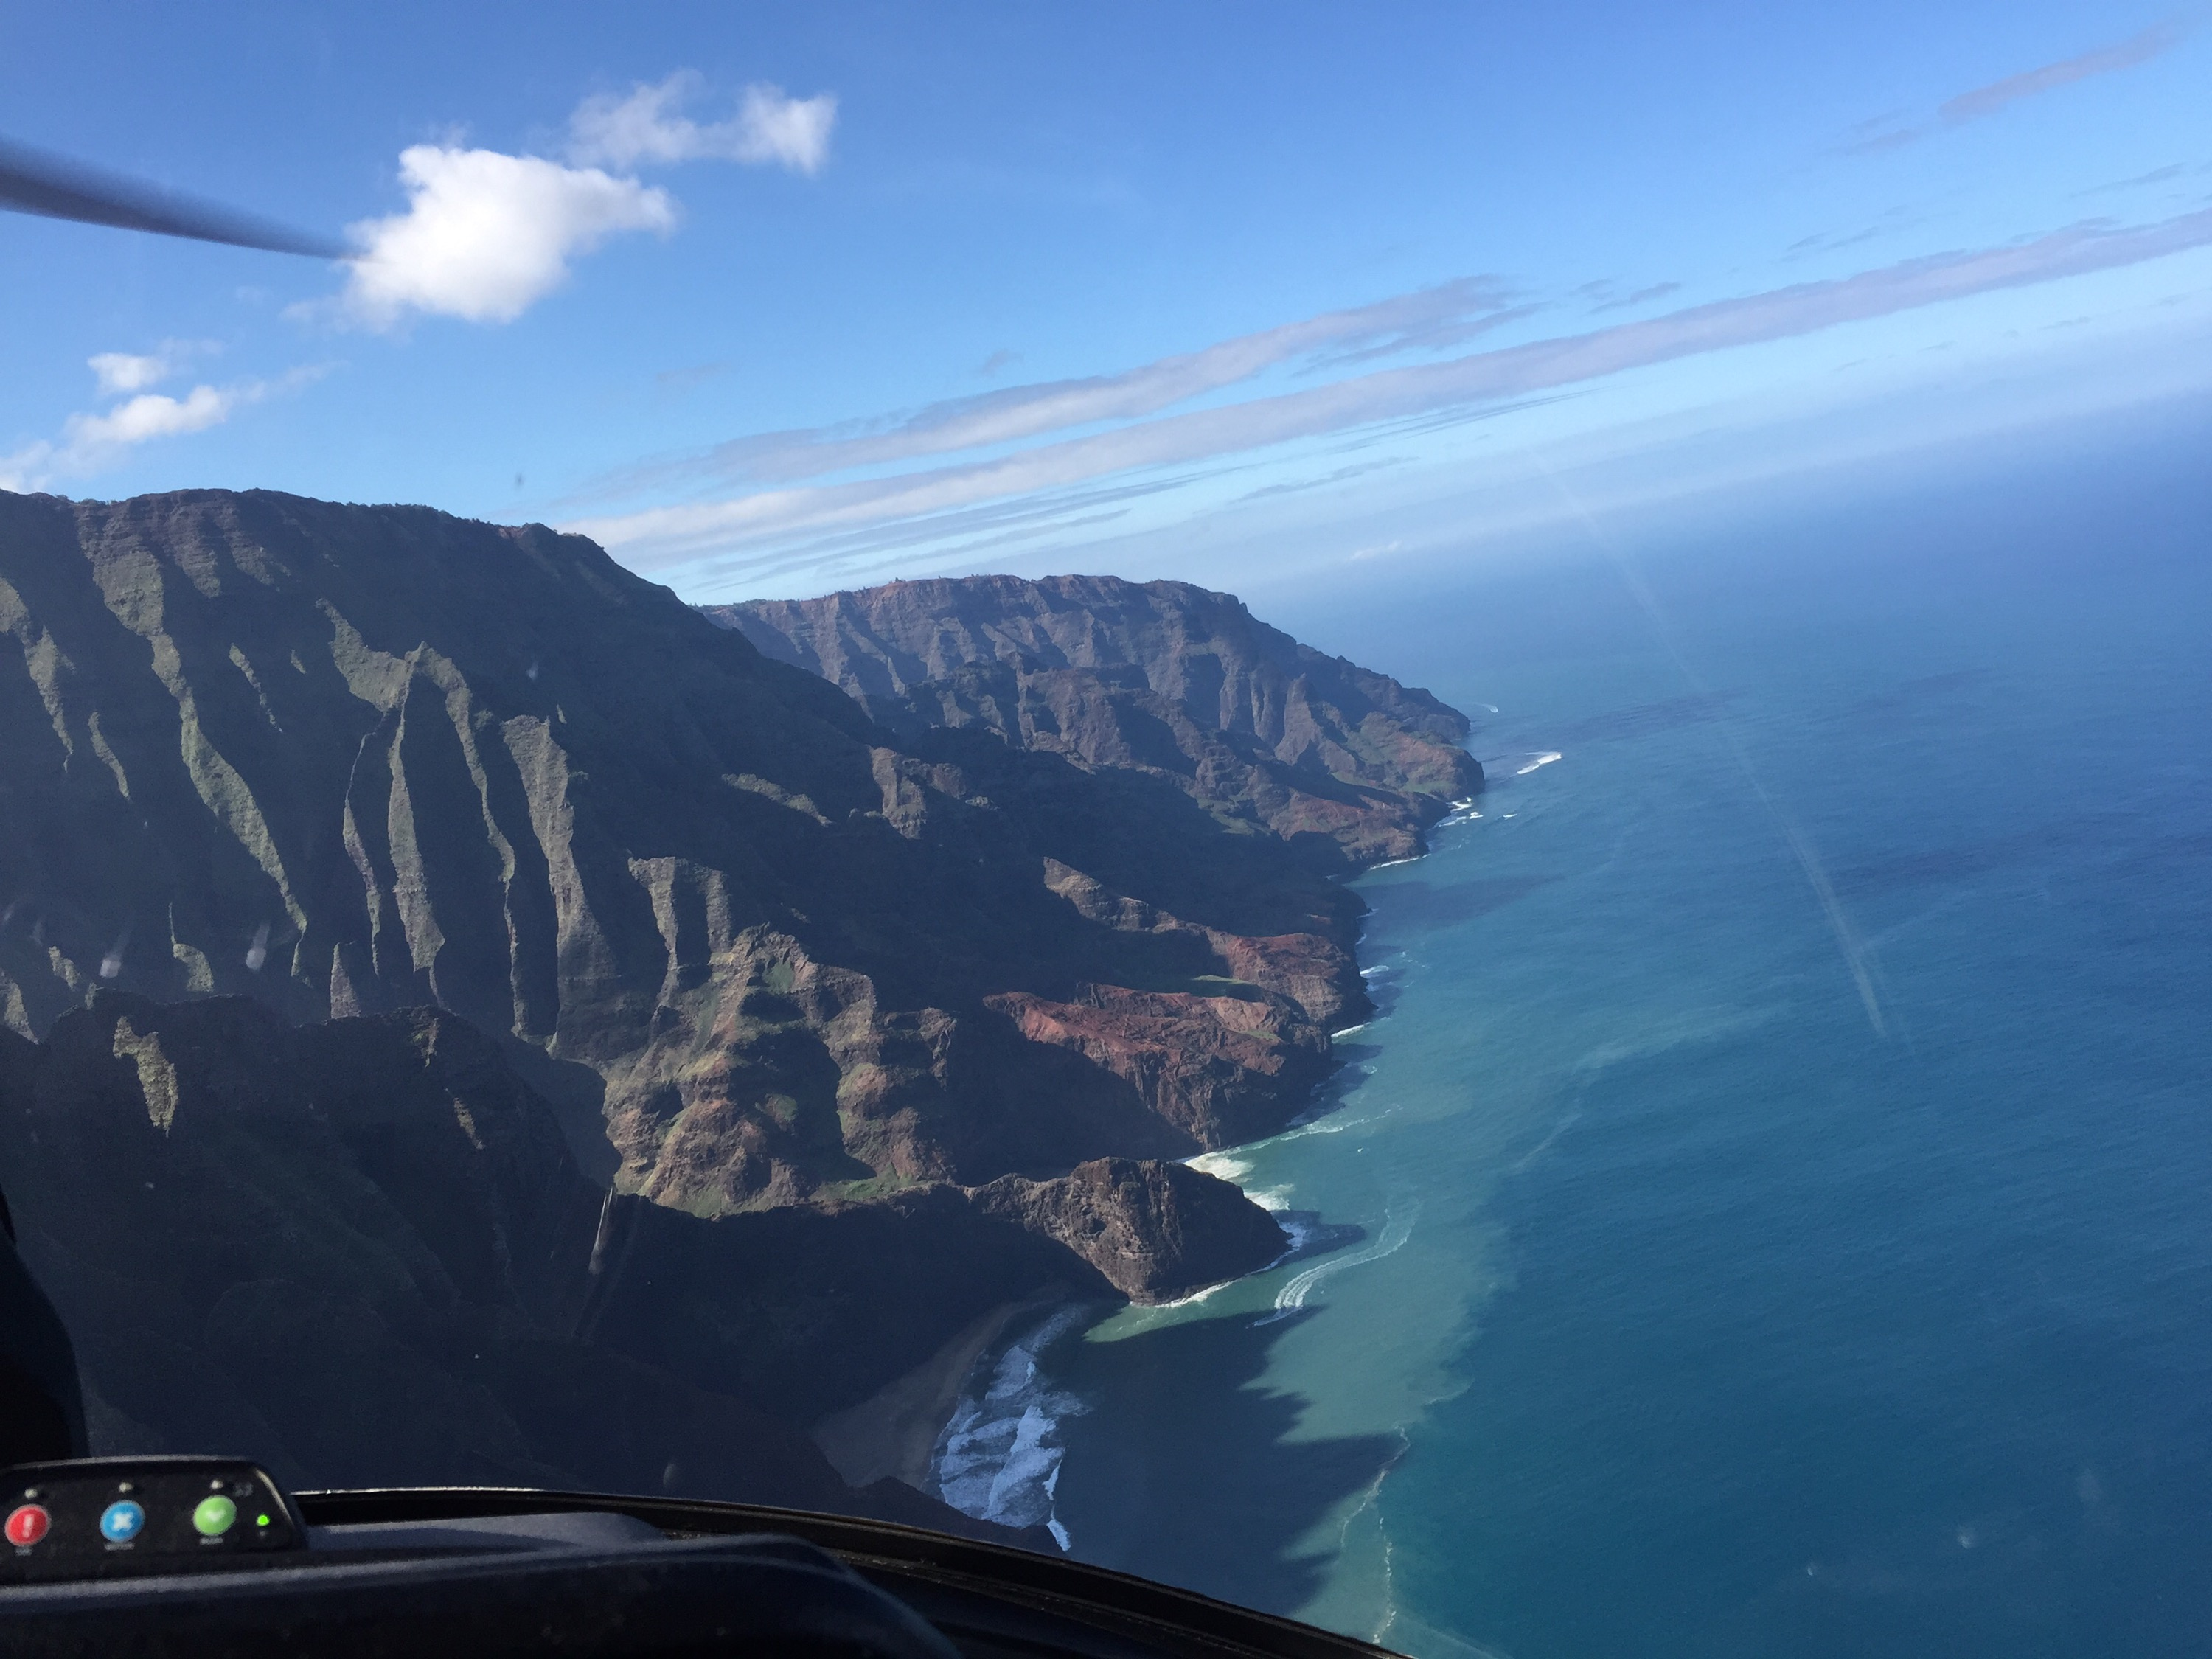 Aerial shot of the mountains and coastline